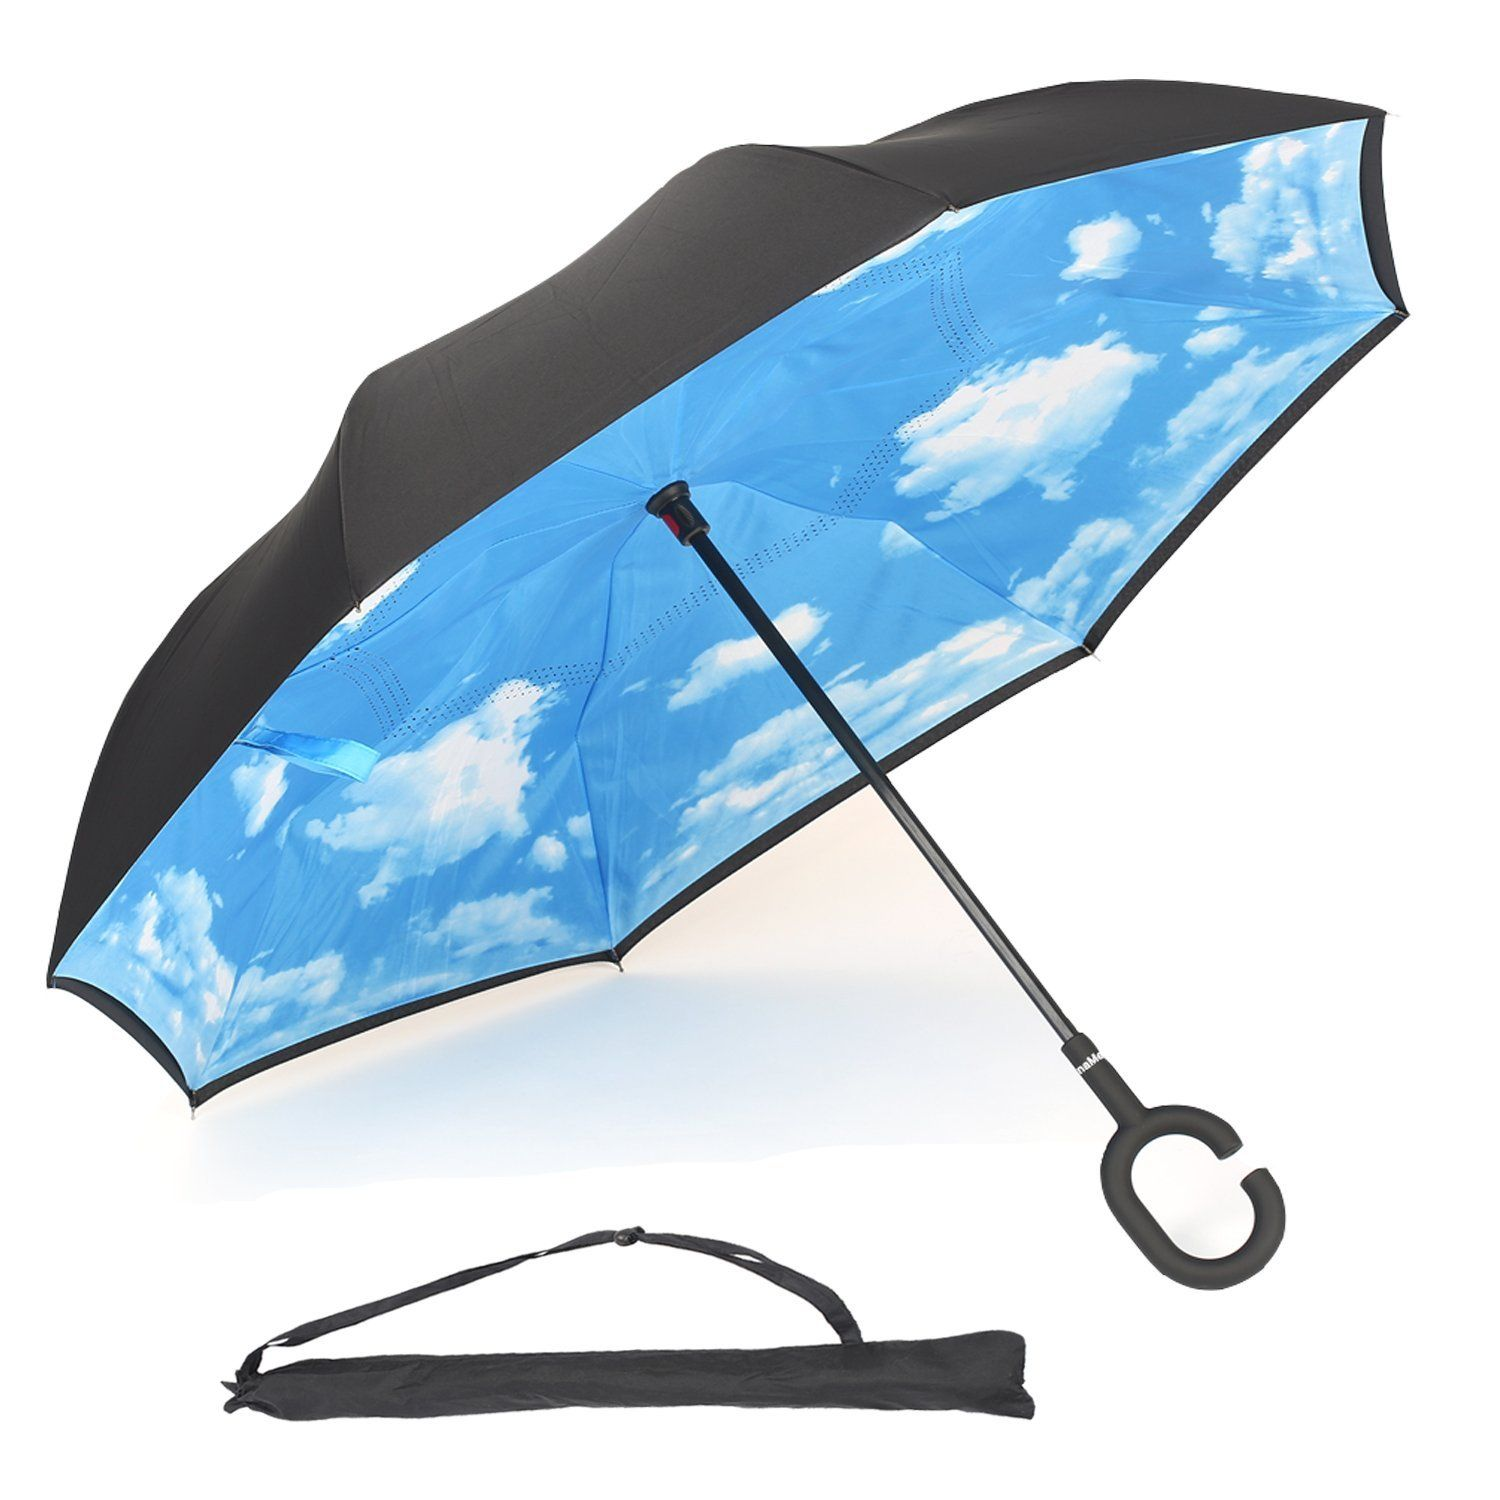 Unamela Inverted Umbrella Double Layer Windproof Stand Self Straight Reverse Folding With